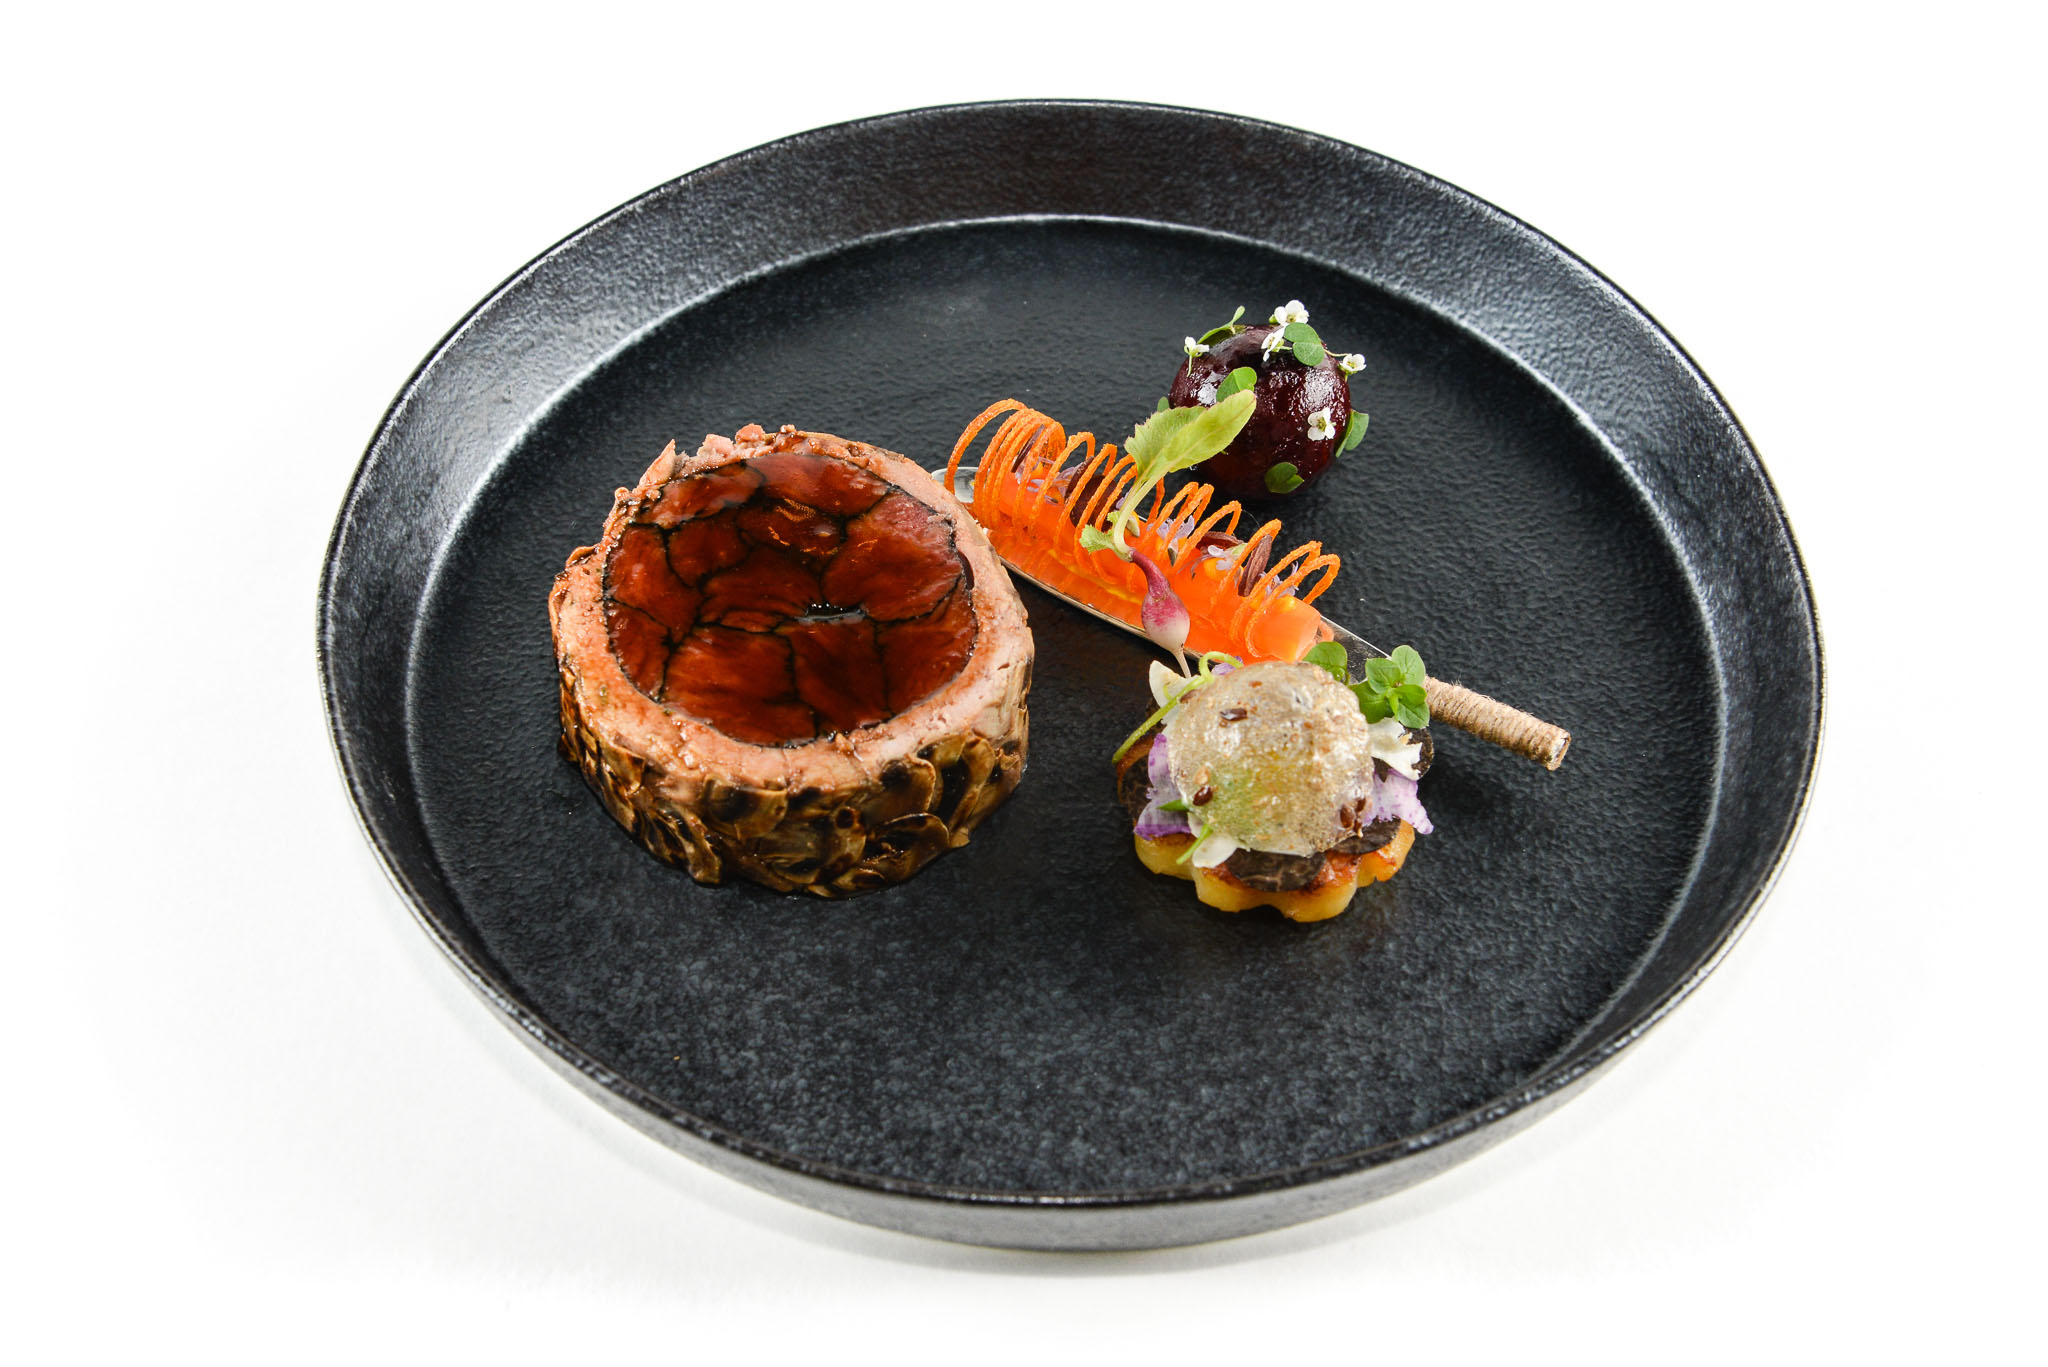 Melbourne, 30 May 2017 - The meat dish by Michael Cole of the Georgie Bass Café & Cookery in Flinders at the Australian selection trials of the Bocuse d'Or culinary competition held during the Food Service Australia show at the Royal Exhibition Building in Melbourne, Australia. Photo Sydney Low